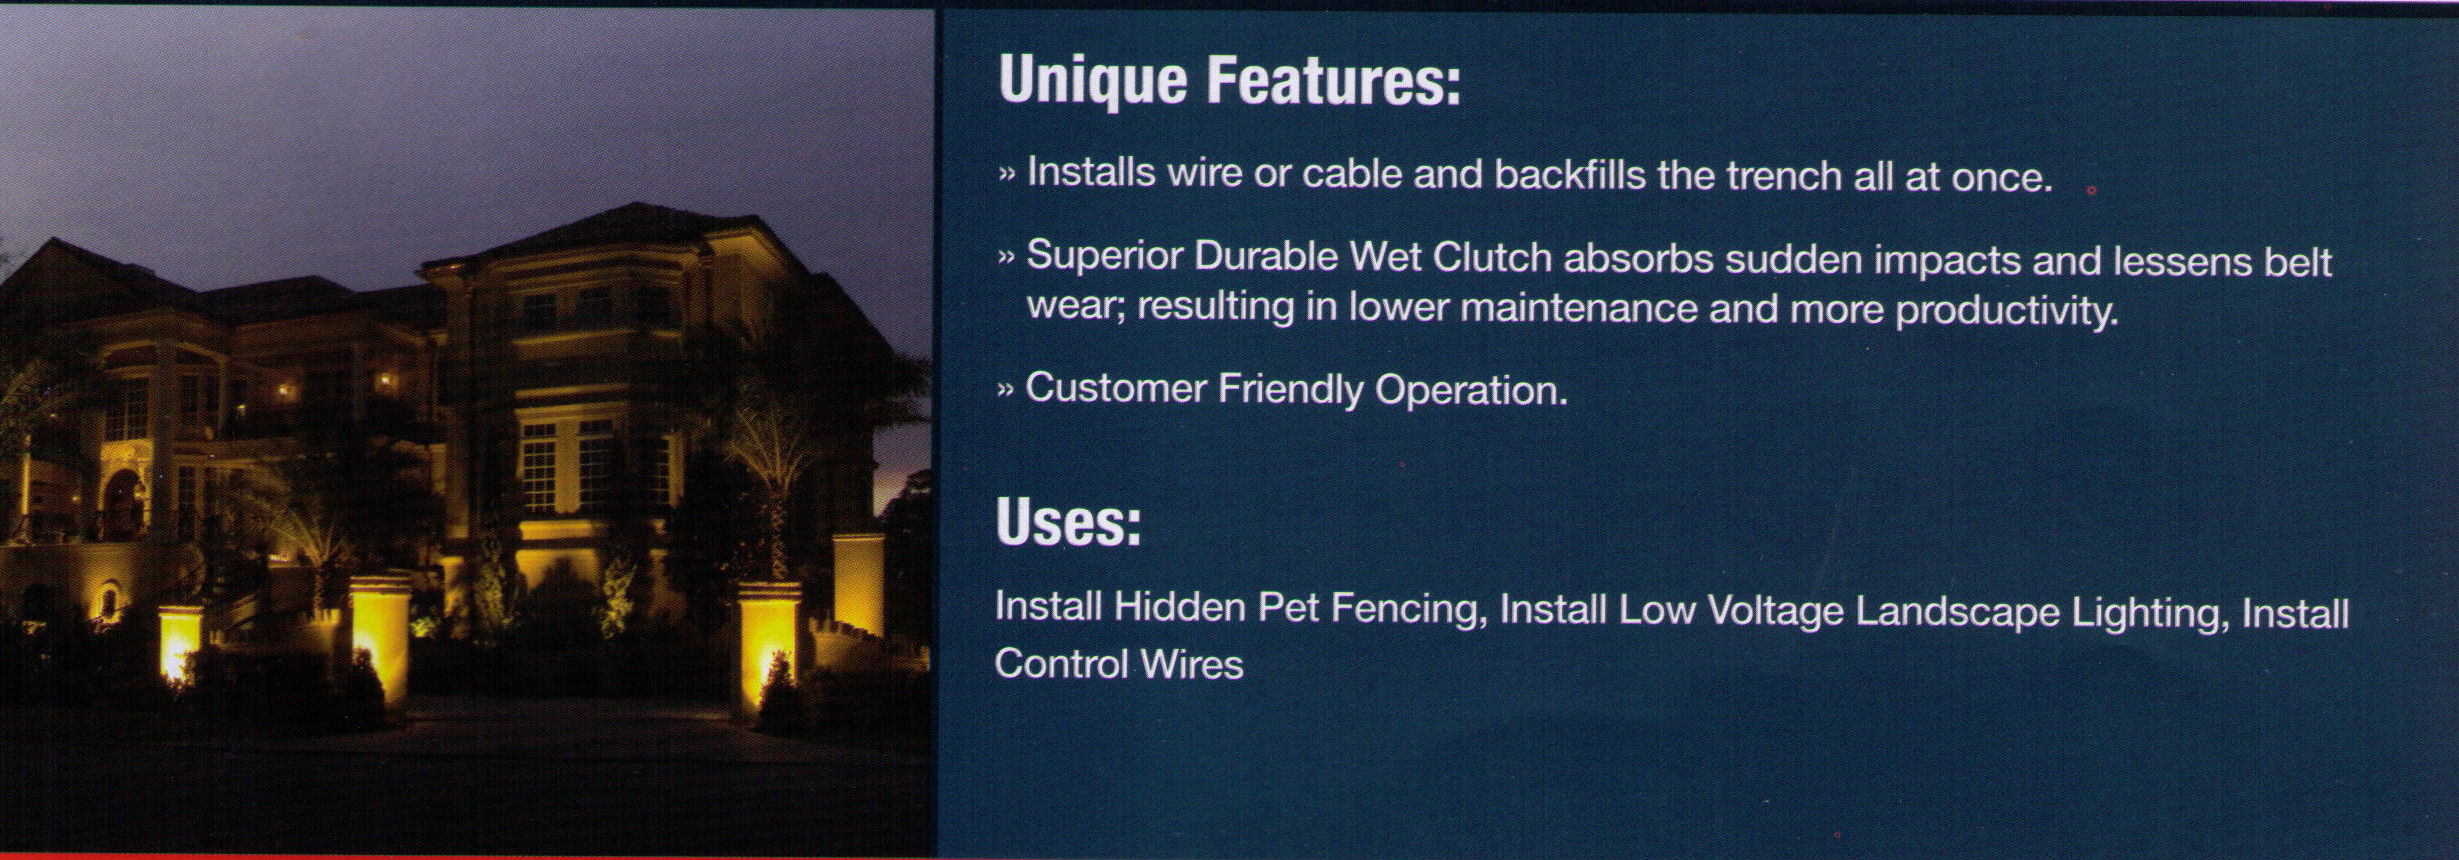 TP400 Cable Installer Features - www.wikco.com